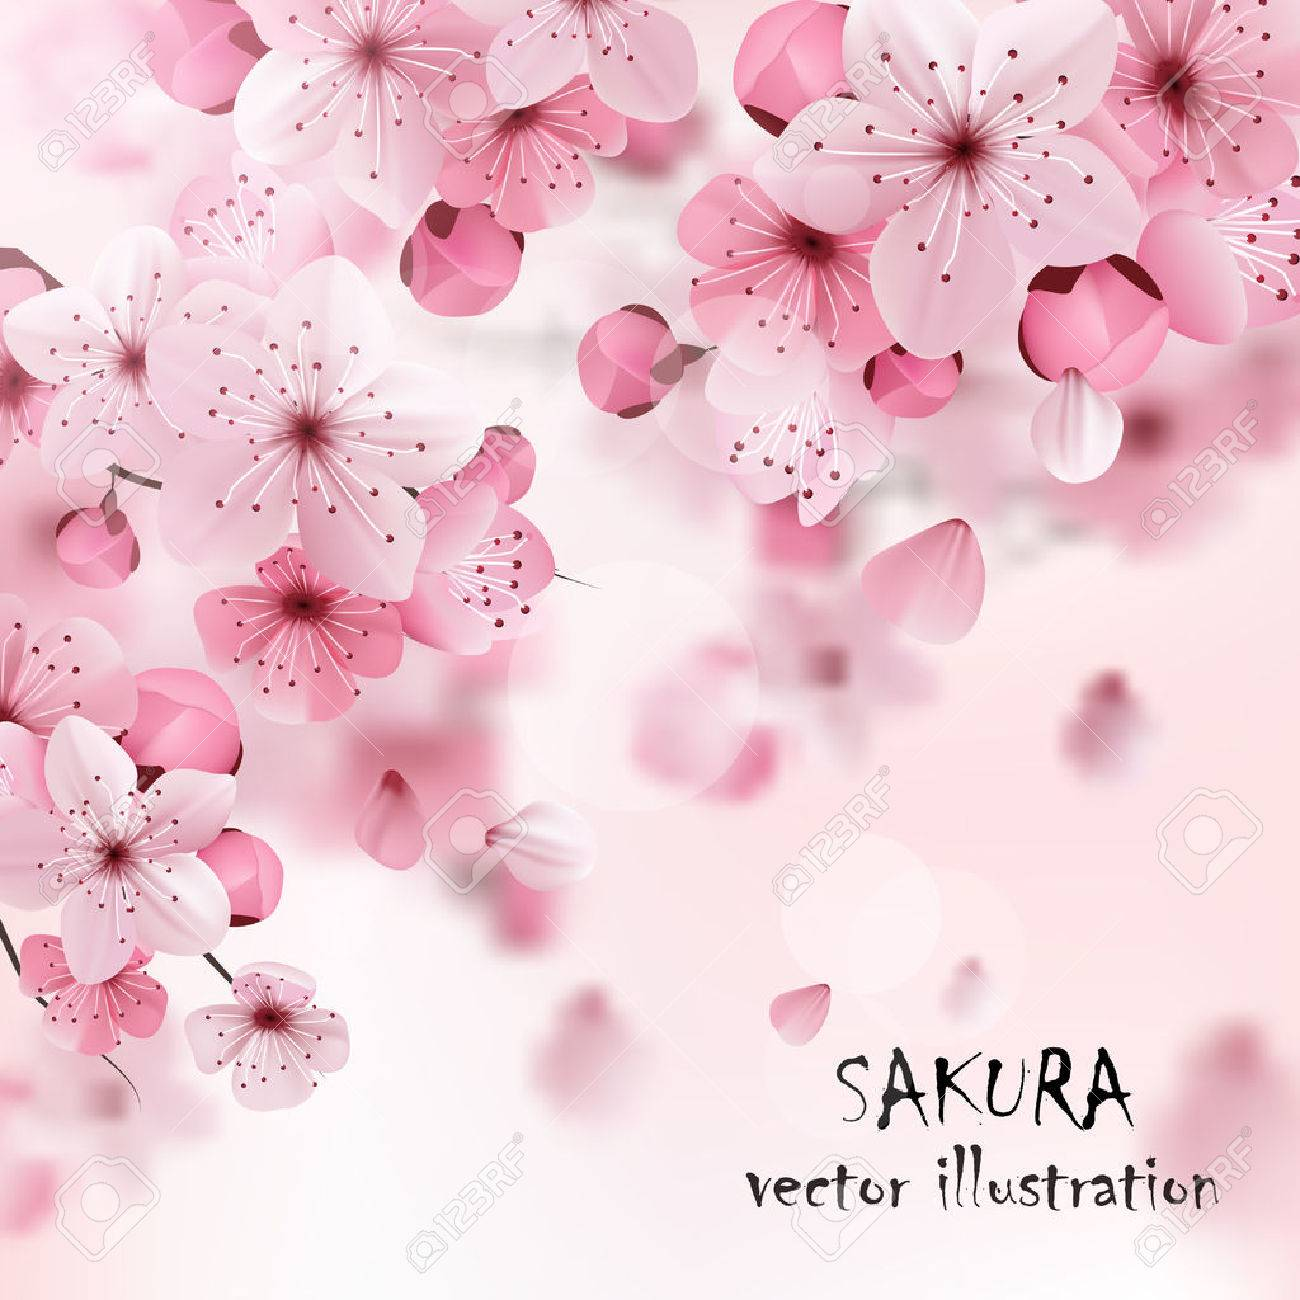 Beautiful print with blossoming dark and light pink sakura flowers beautiful print with blossoming dark and light pink sakura flowers and title vector illustration stock vector mightylinksfo